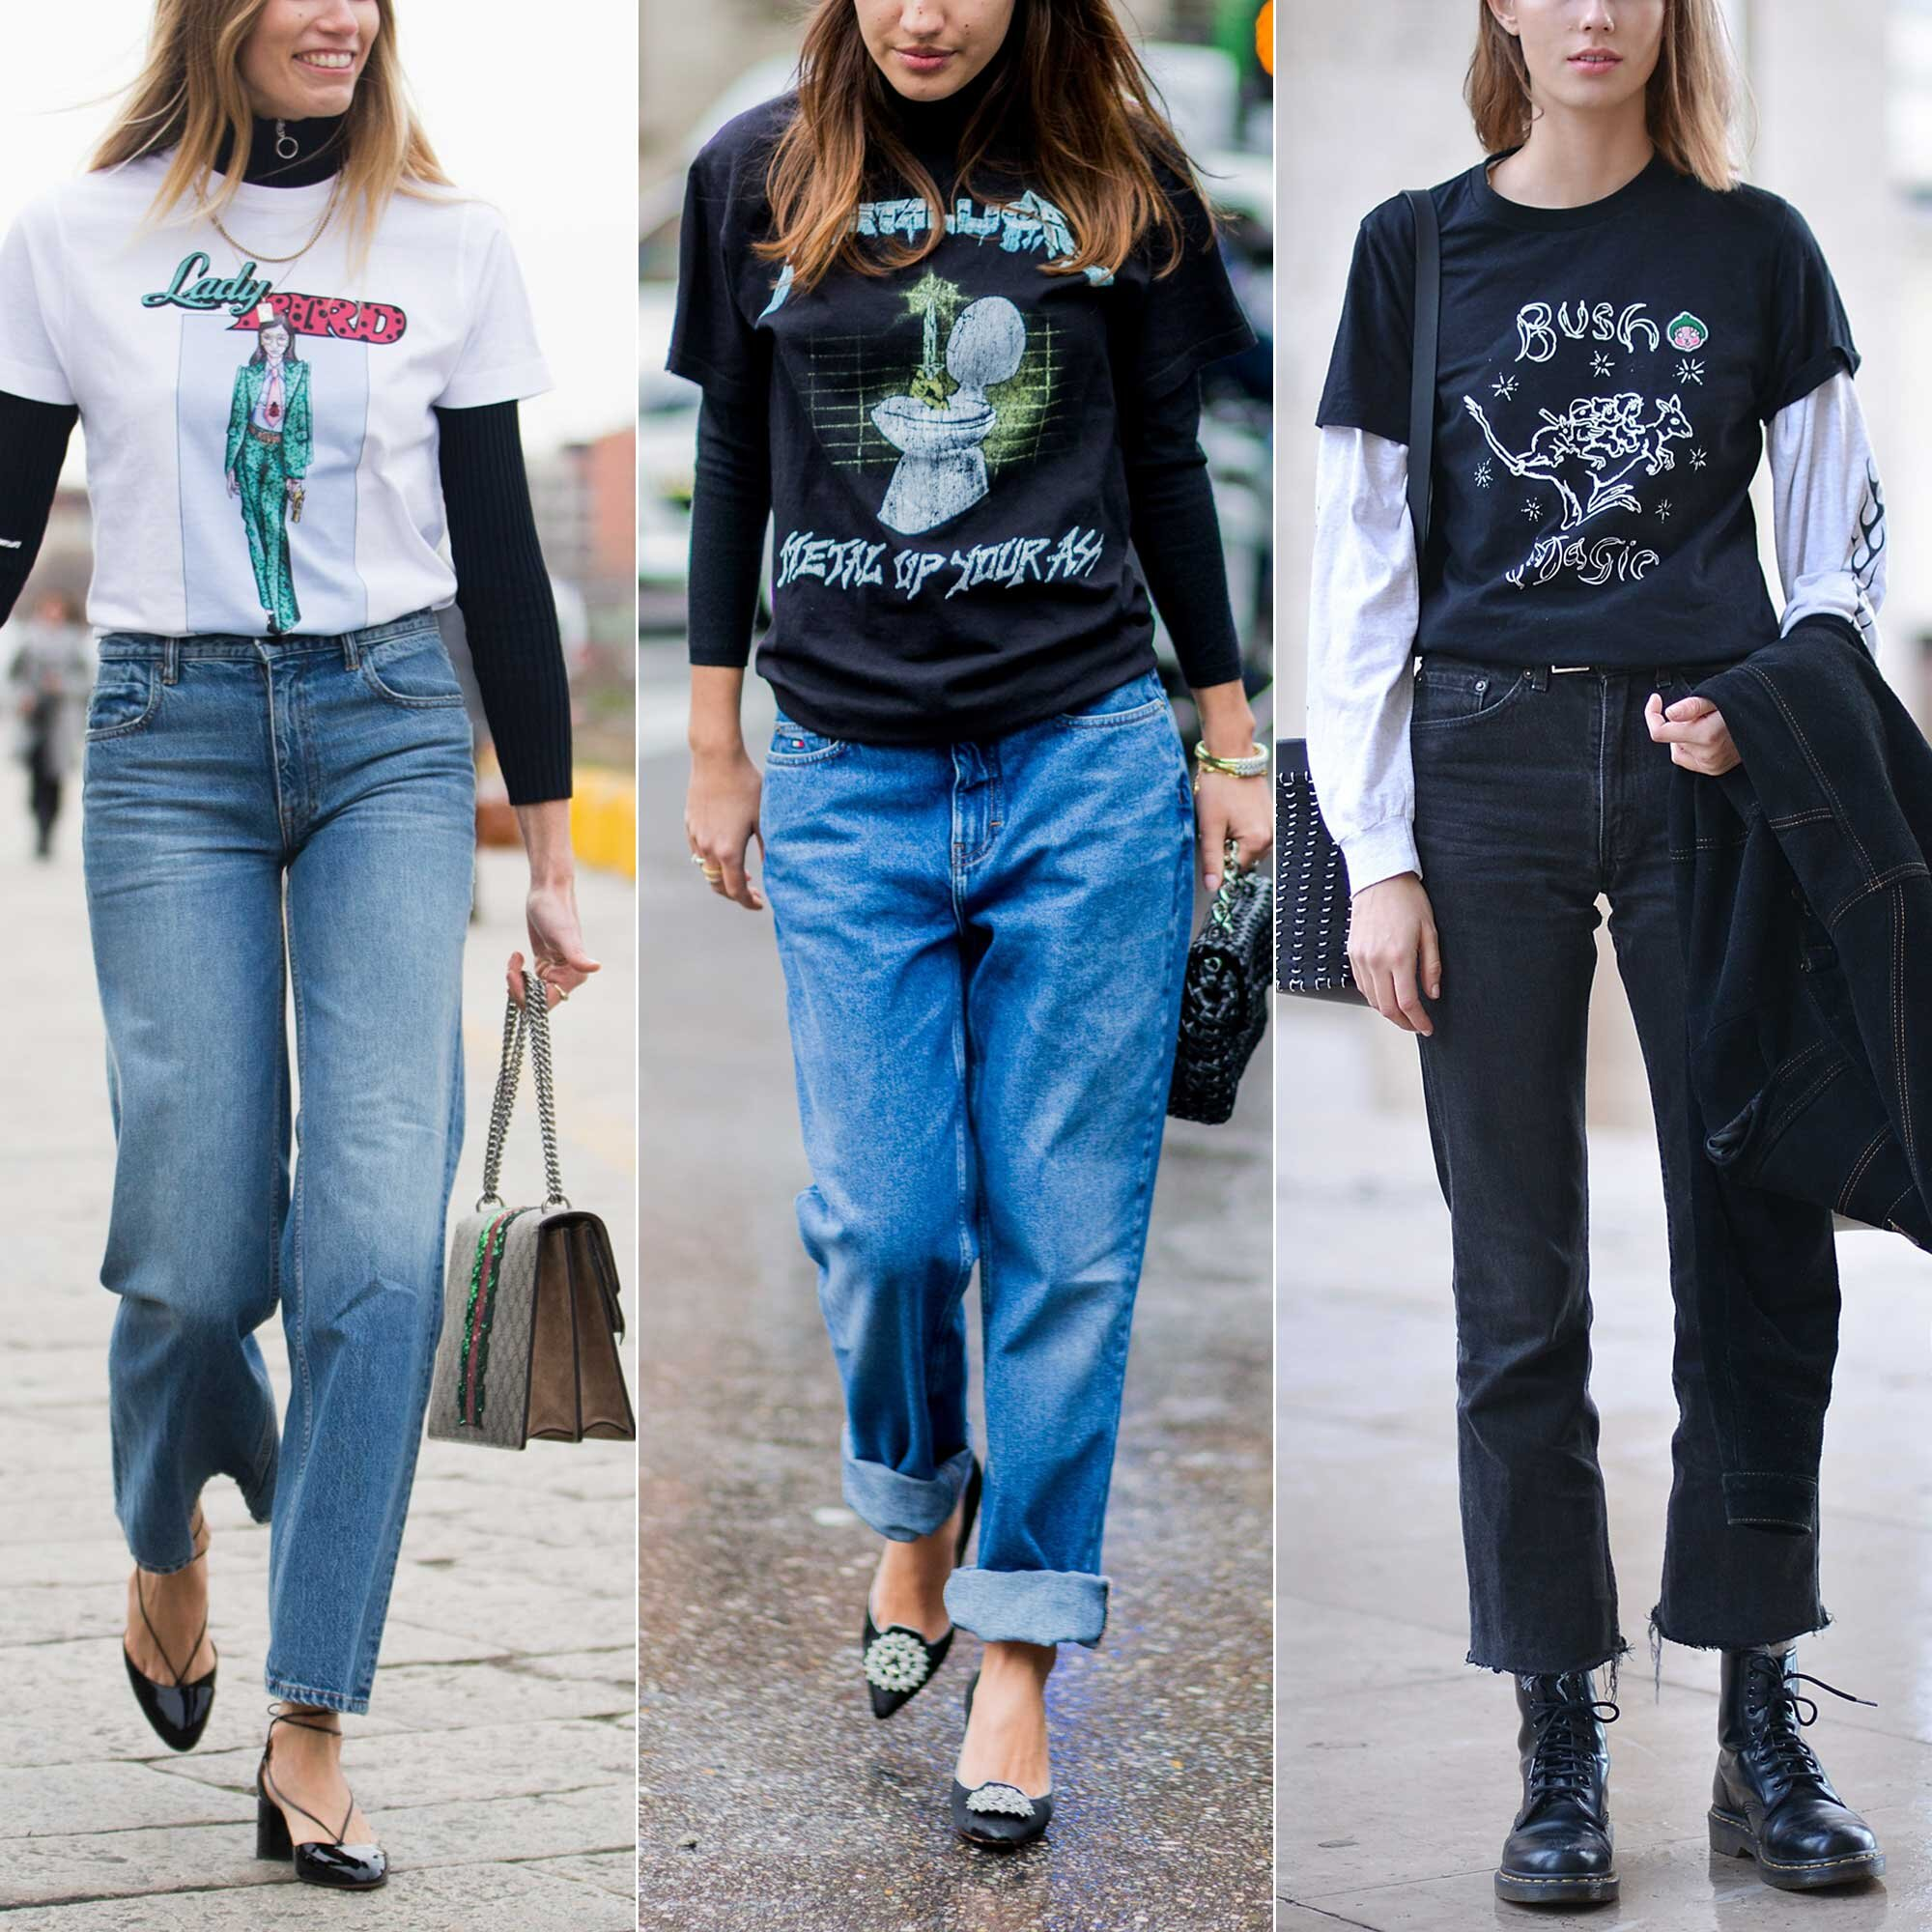 2016 Street Style Trend at Fashion Week  Layering T-Shirts 61813f9e6e